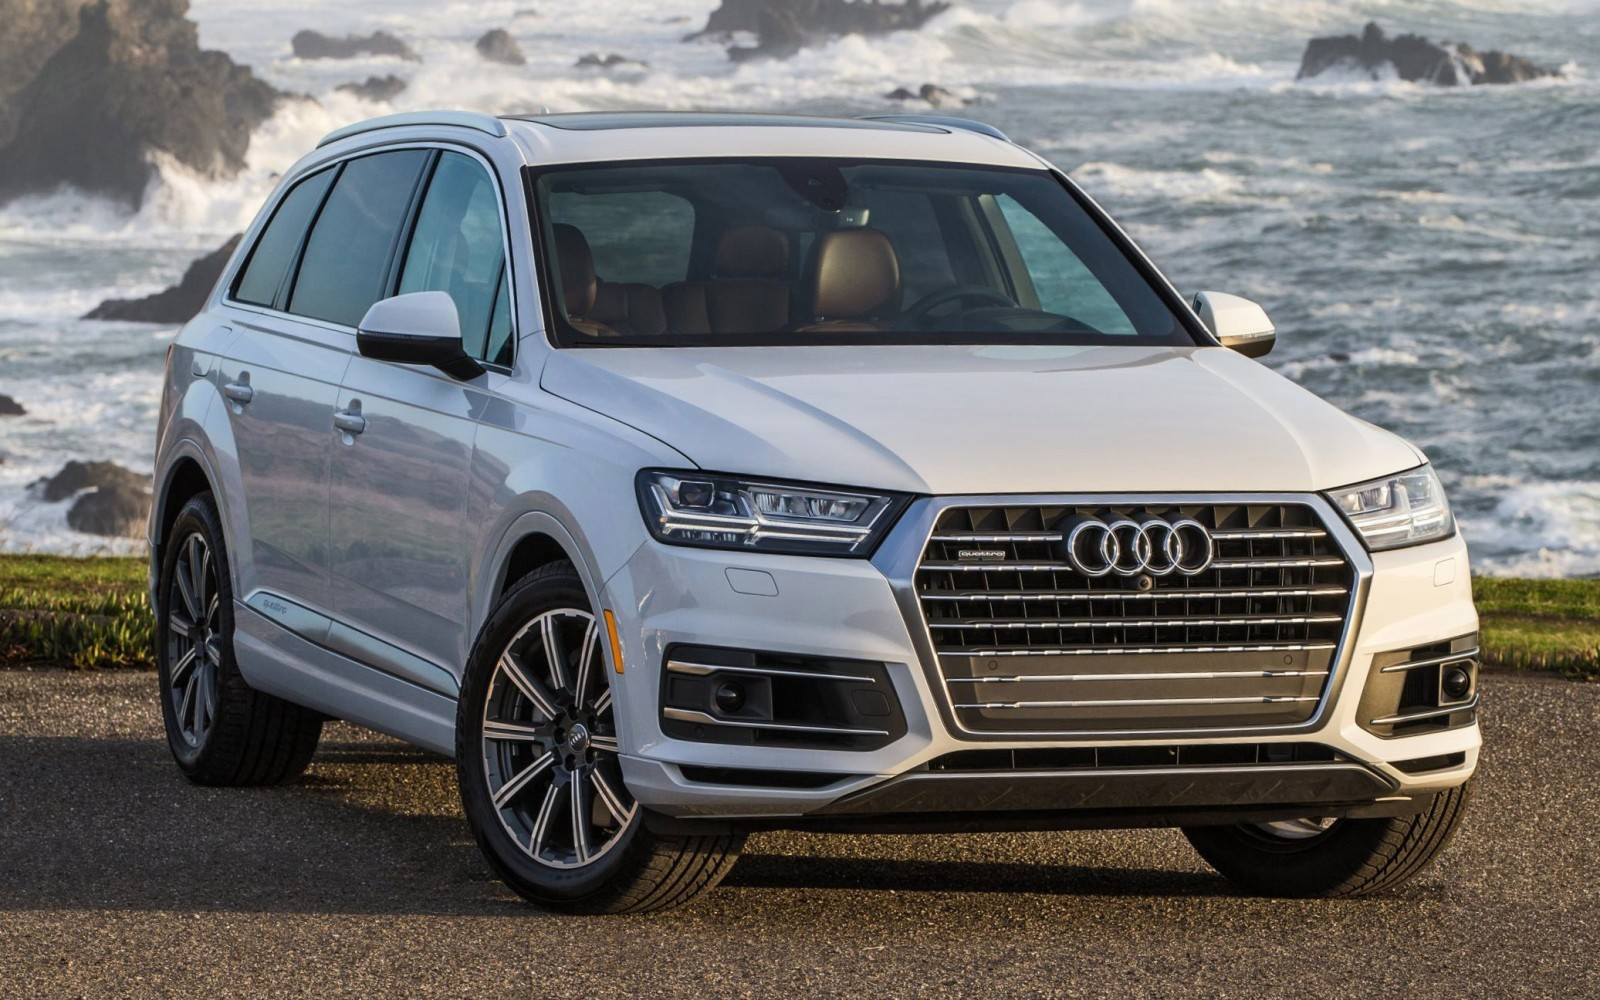 Suv Wallpapers Hd 2017 Audi Q7 Visualizer Colors Cabins Pricing And